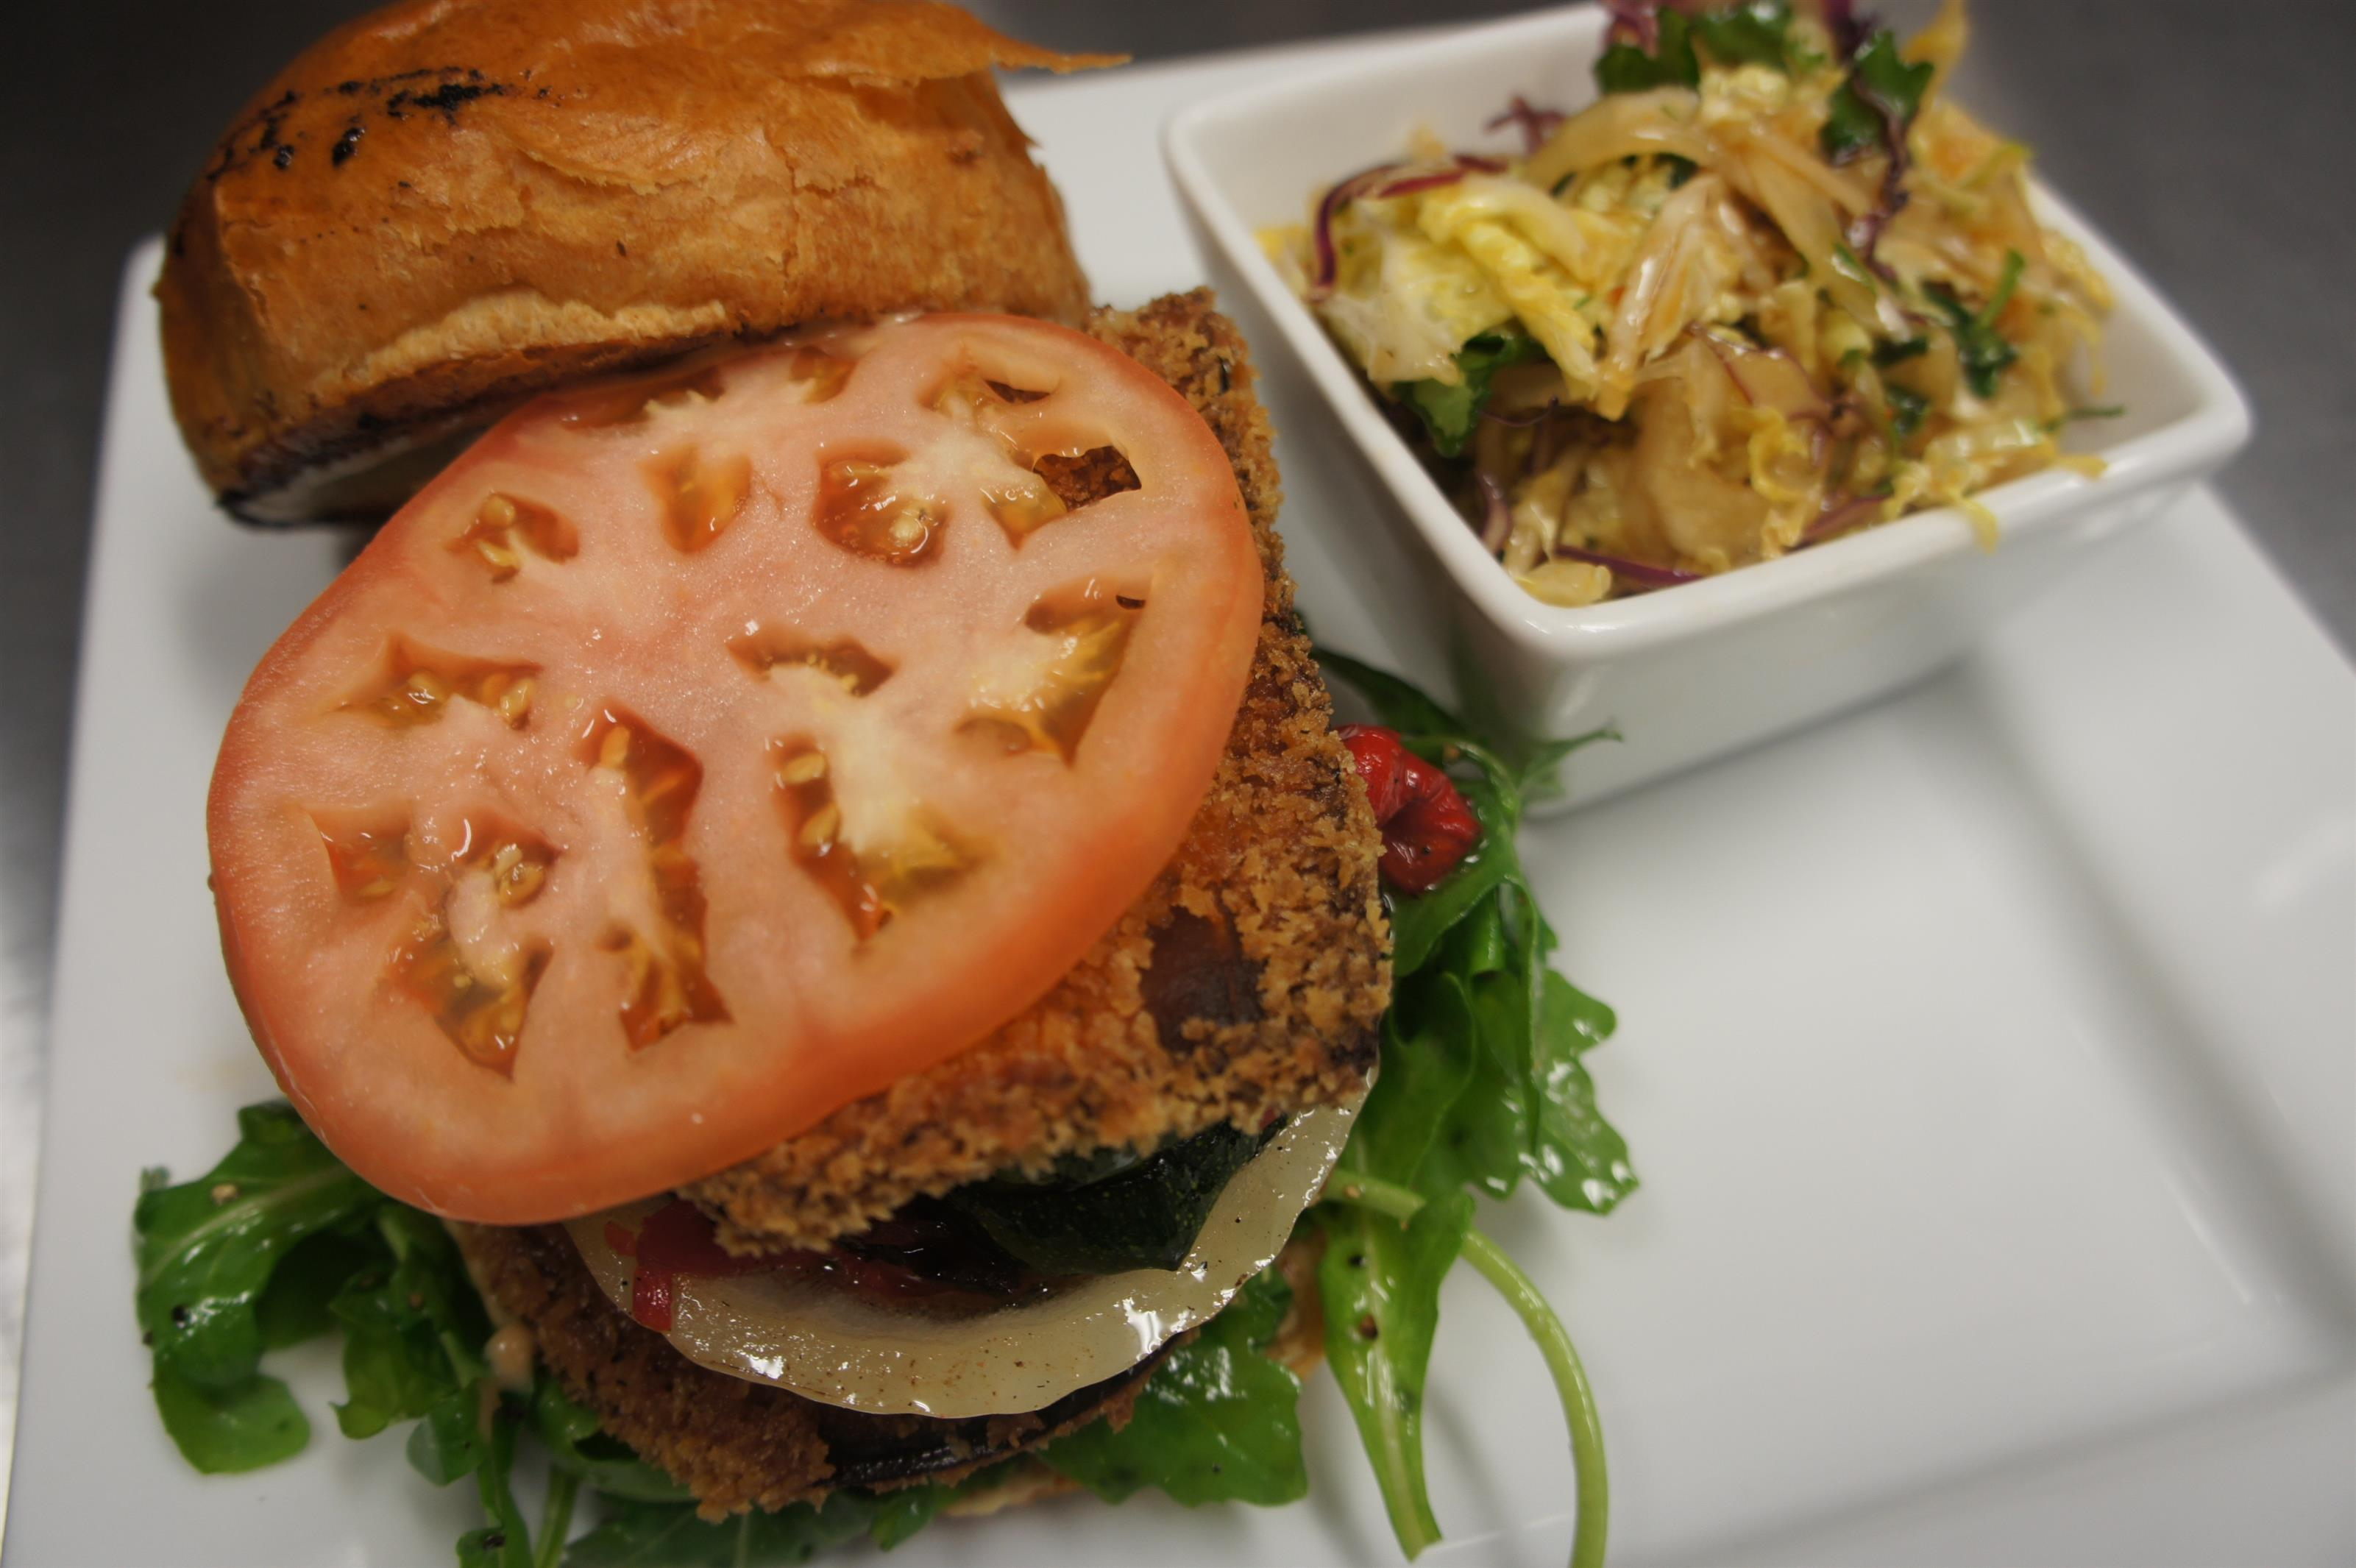 Vegetarian burger with breaded eggplant, tomato, onion, peppers and greens served open faced with a side of coleslaw